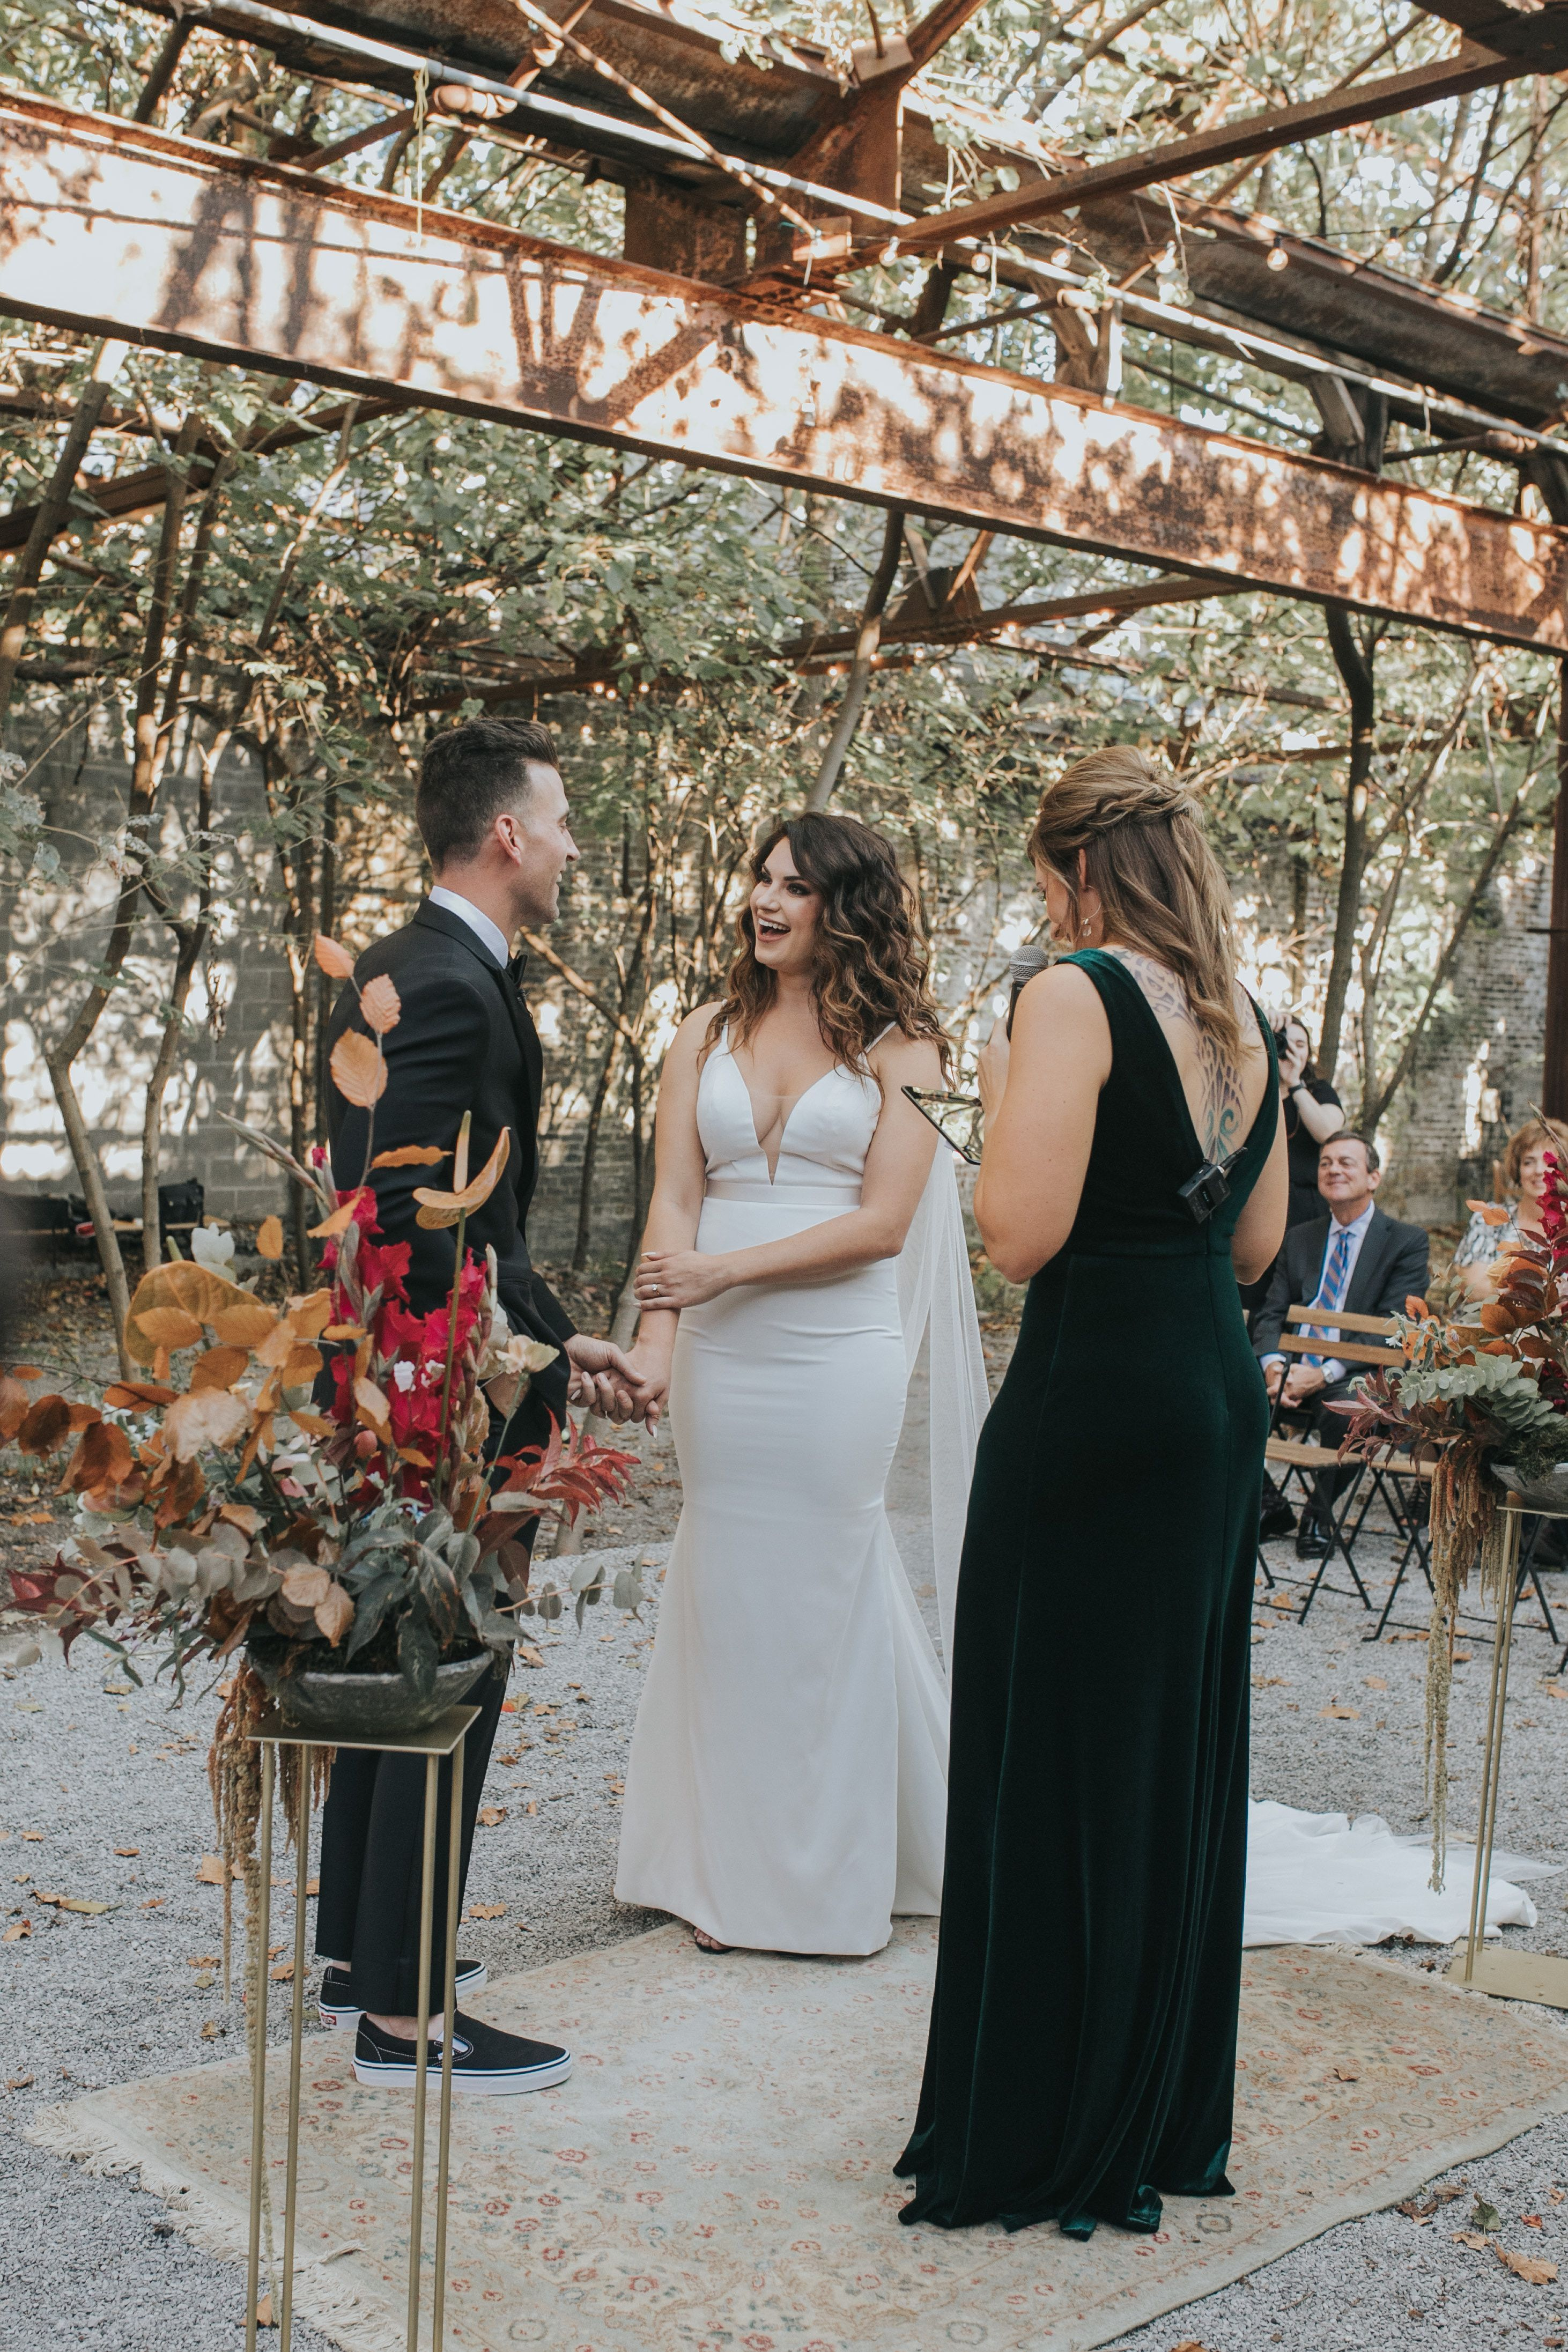 Arts Estuary Ceremony In New Orleans W Lovegood Wedding Event Rentals In 2020 Wedding Events Event Rental Ceremony